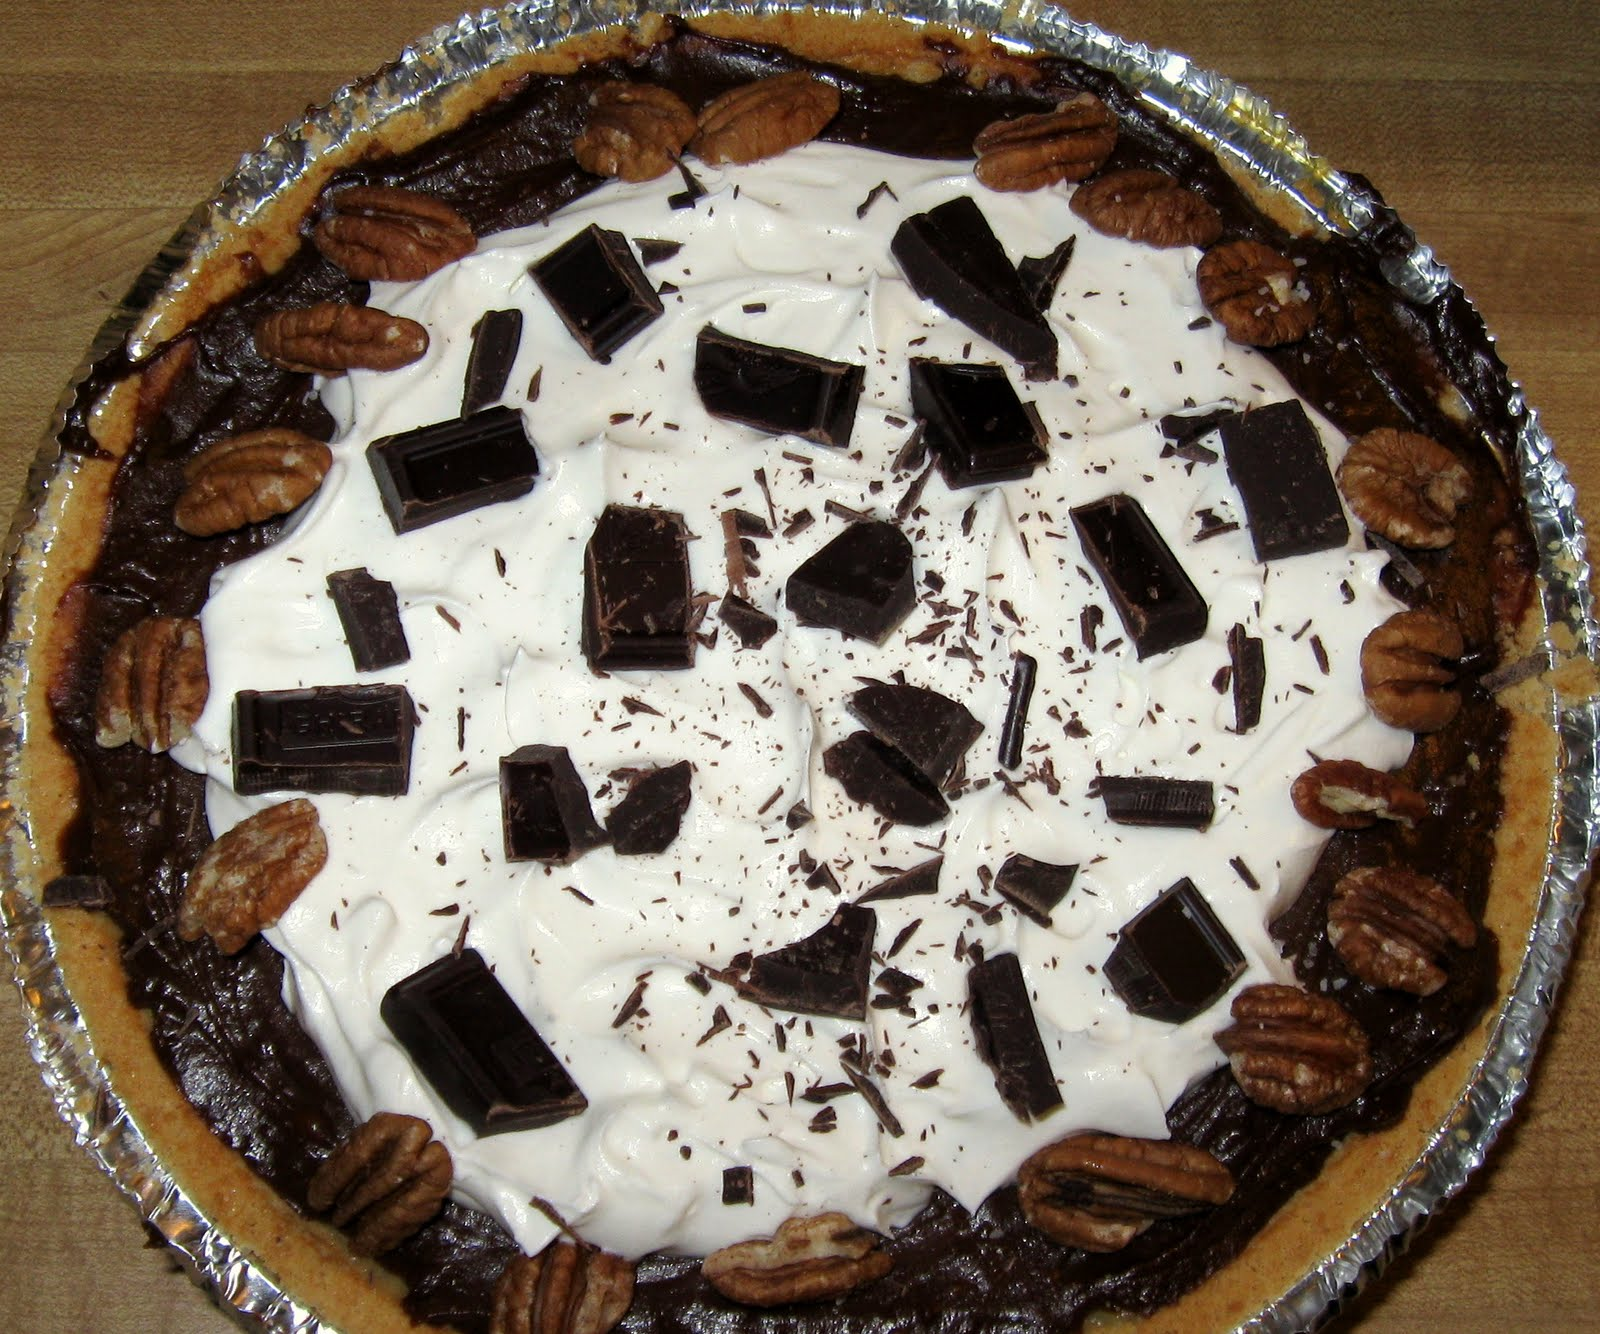 Chocolate Icebox Pie Sweetened Condensed Milk